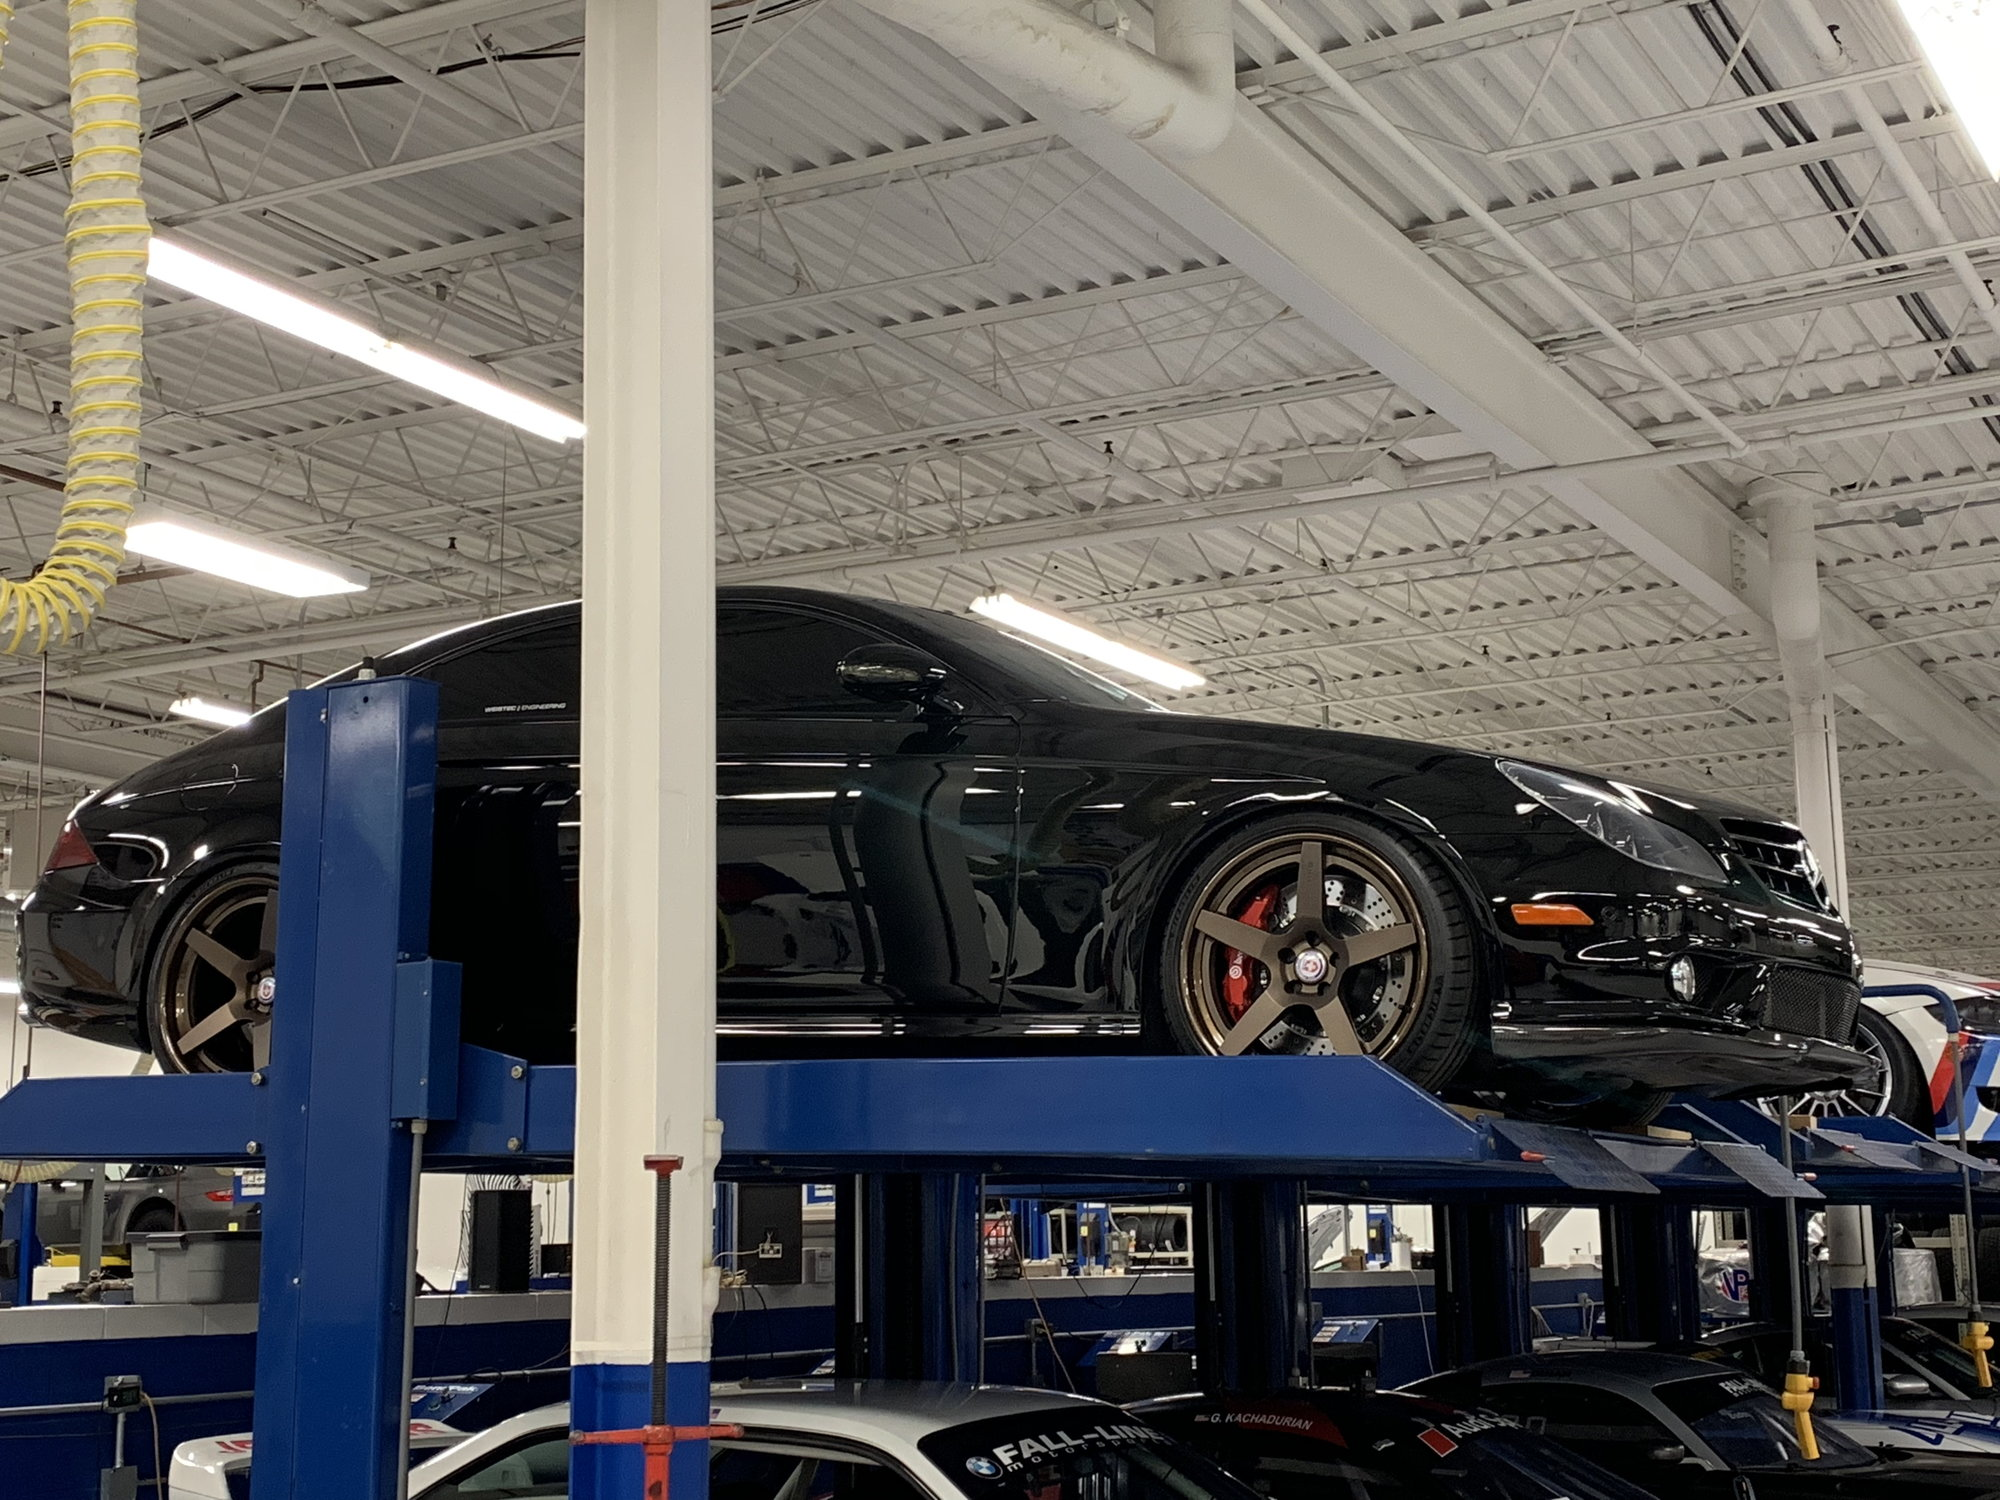 Weistec stage 3 cls63 for sale - Page 2 - 6SpeedOnline